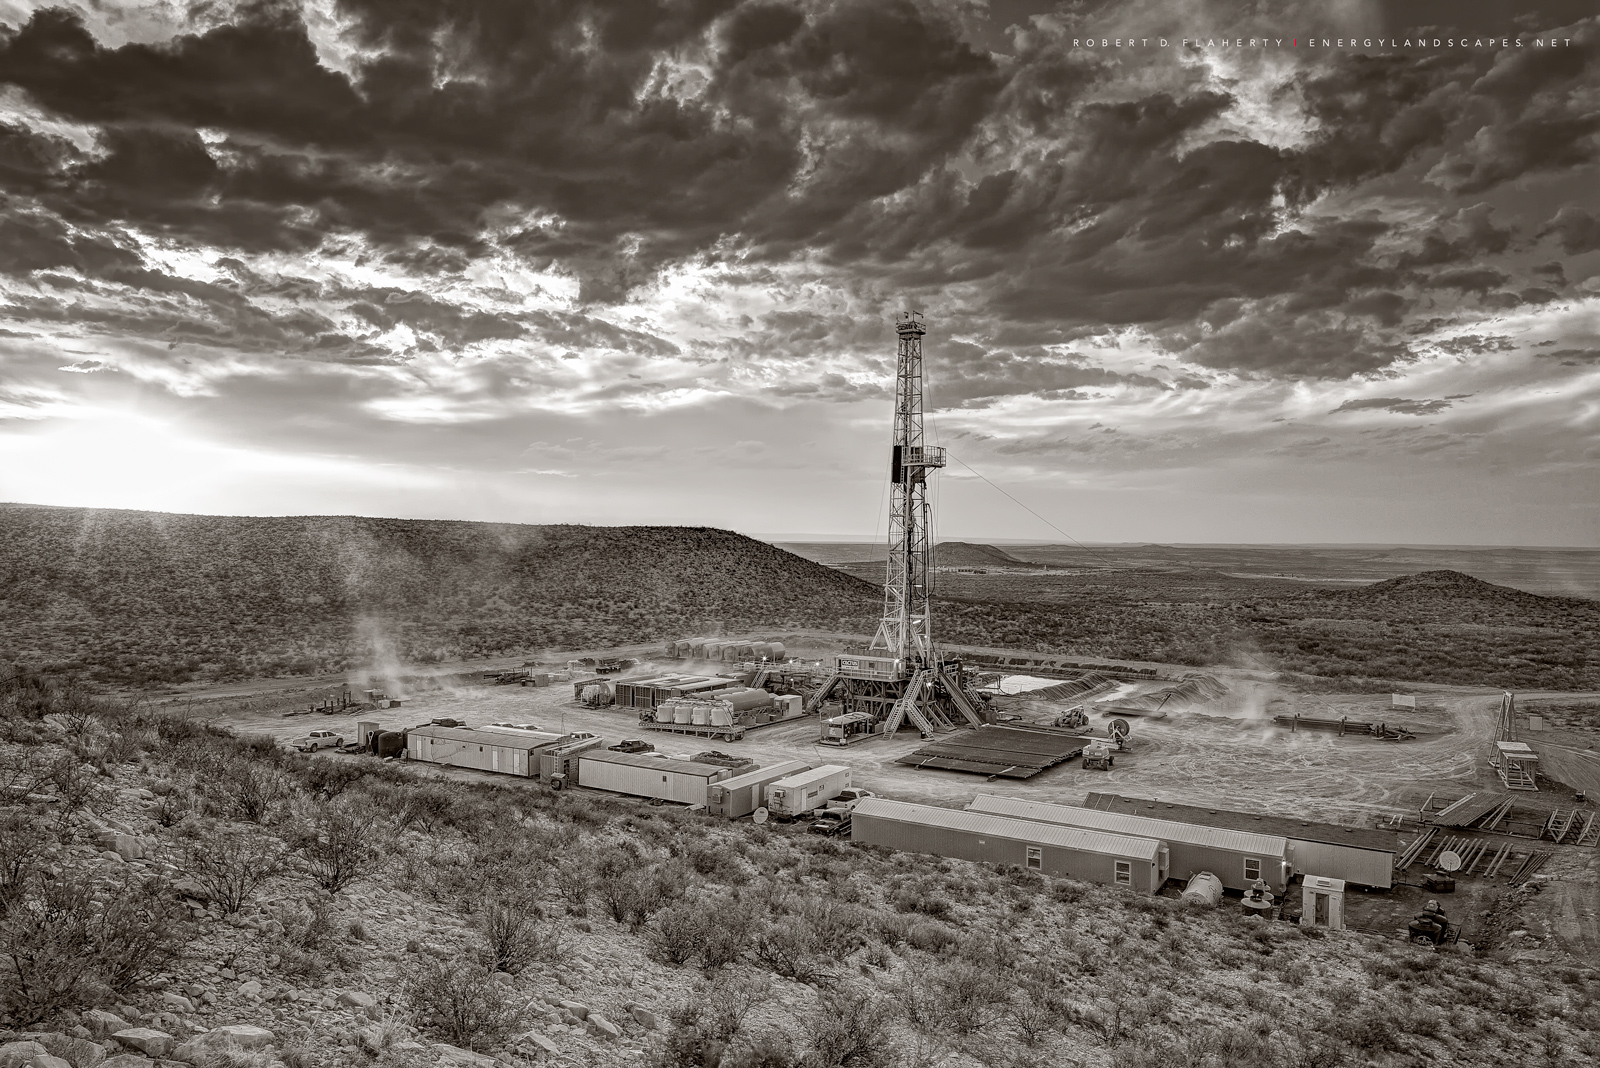 Delaware Basin, Permian Basin, West Texas, Mountain, drilling rig, Cimarex, Chevron, Wind, sepia, black and white, black & white